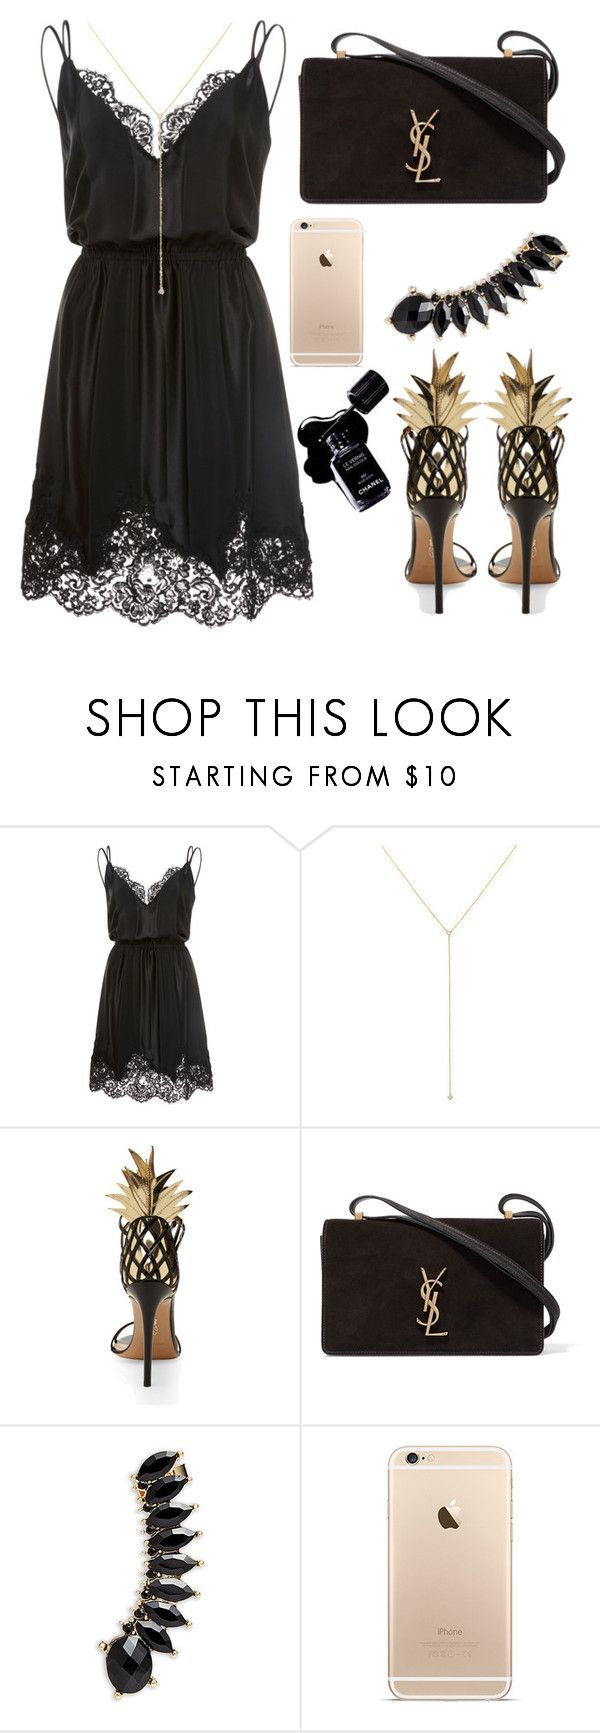 """""""Untitled #8405"""" by tatyanaoliveiratatiana ❤ liked on Polyvore featuring Georgine, ZoÃ« Chicco, Aquazzura, Chanel, Yves Saint Laurent and Jules Smith"""